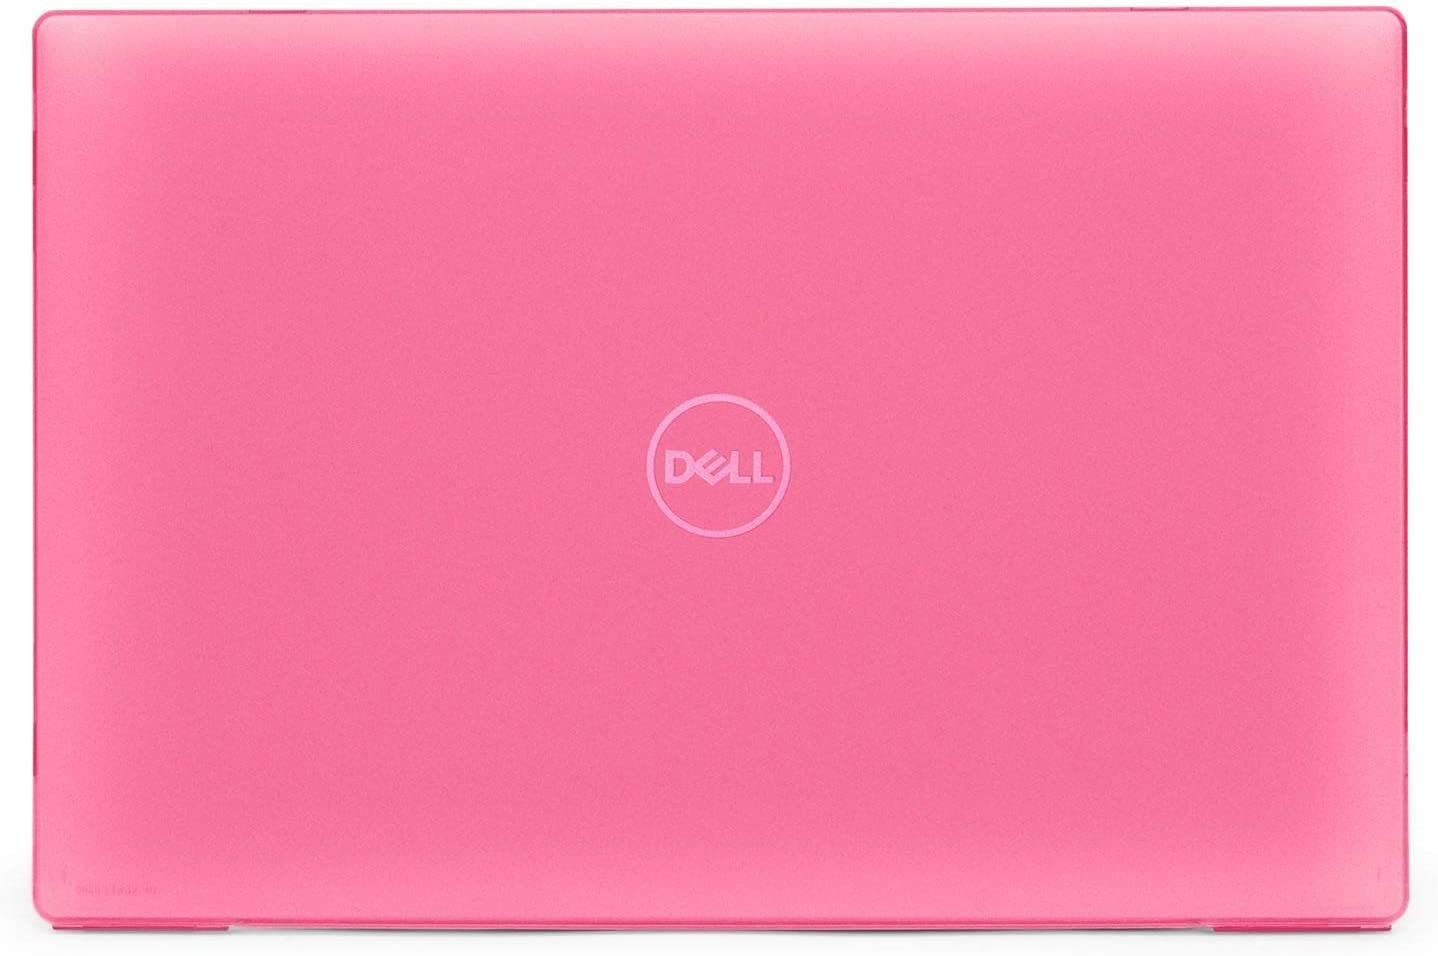 """Pink iPearl mCover Hard Shell Case for 13.3"""" Dell XPS 13 9343/9350 / 9360 Models (not Fitting Older L321X / L322X / 9333 and Newer 9365 2-in-1 Models) Ultrabook Laptop - Pink"""